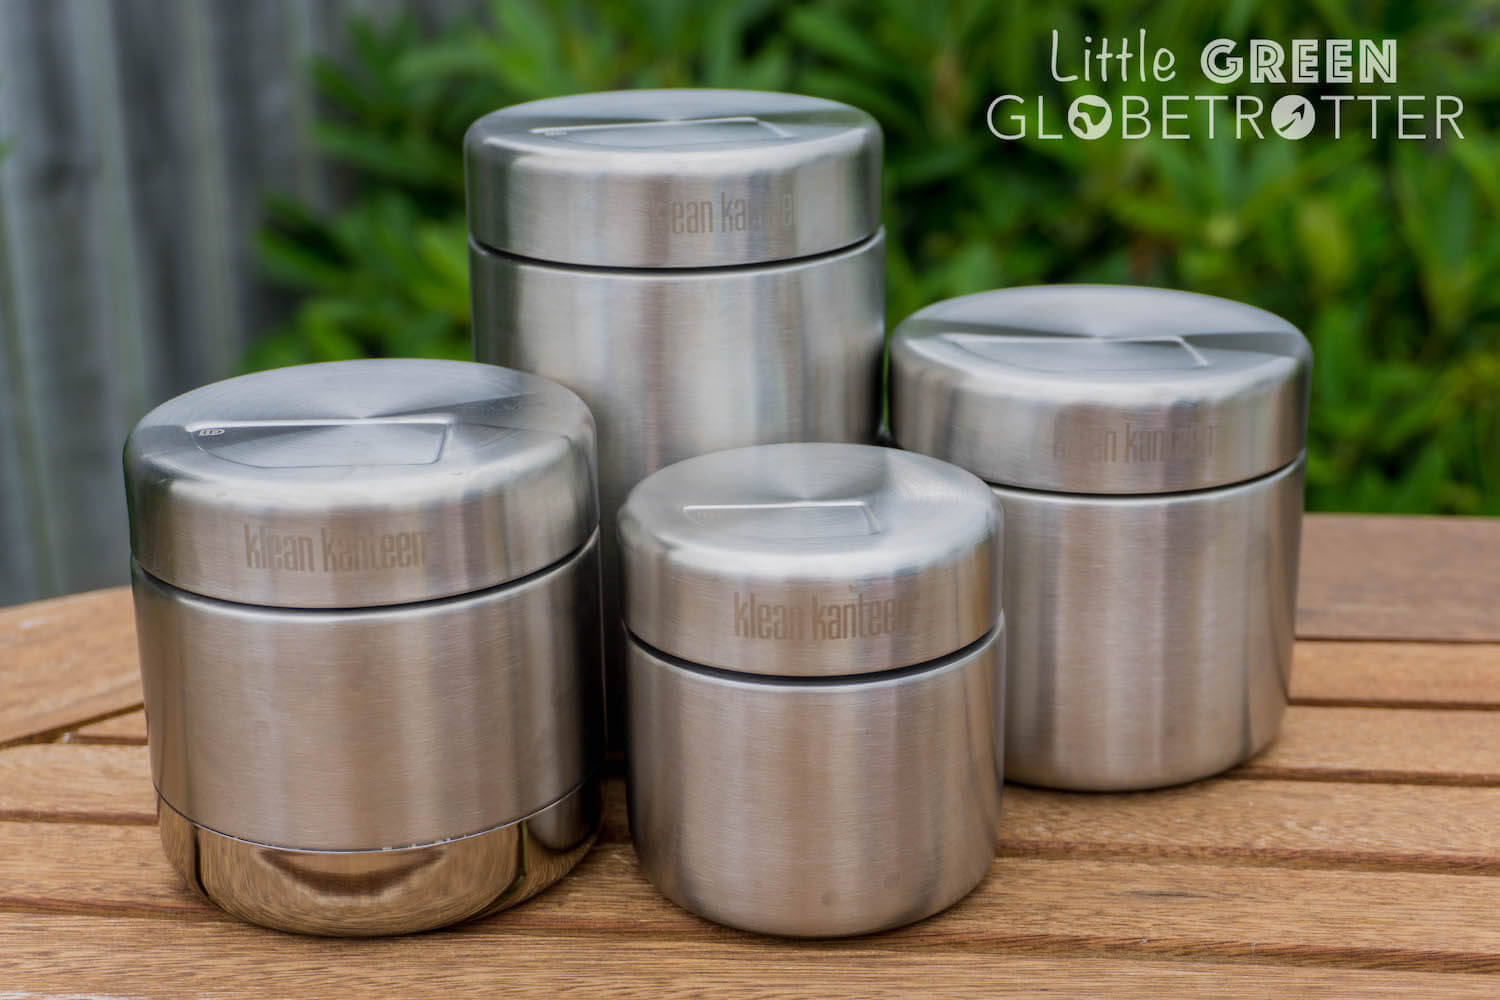 Klean Kanteen canisters